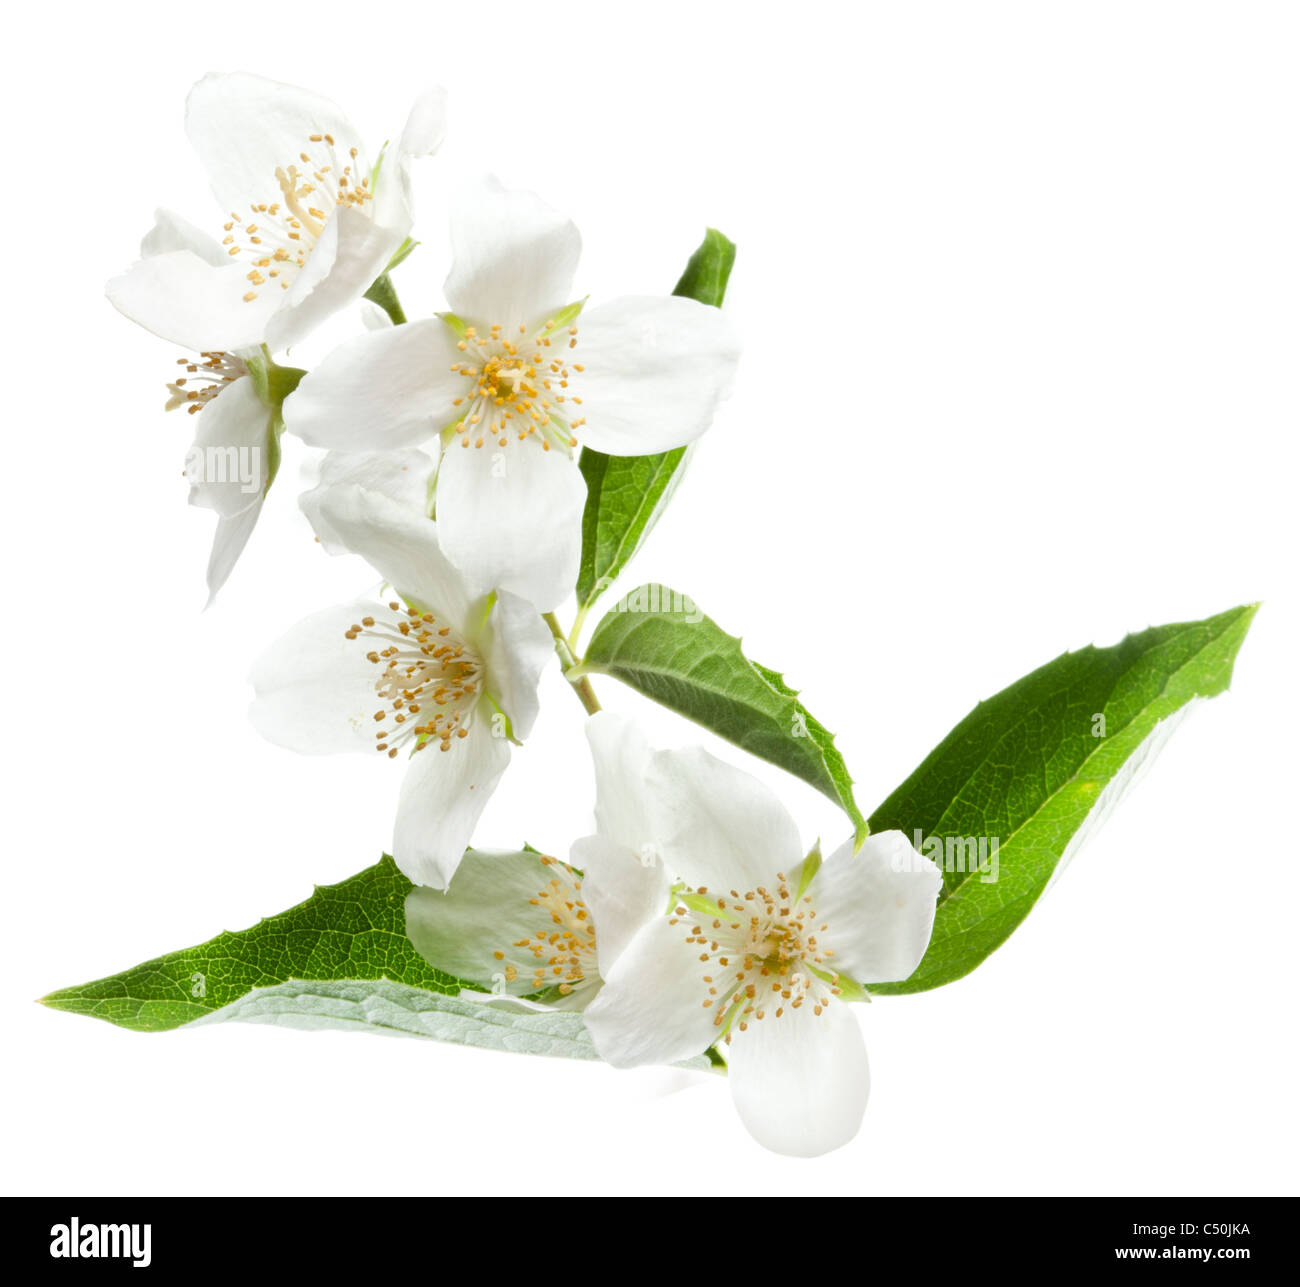 White Jasmine Stock Photos & White Jasmine Stock Images